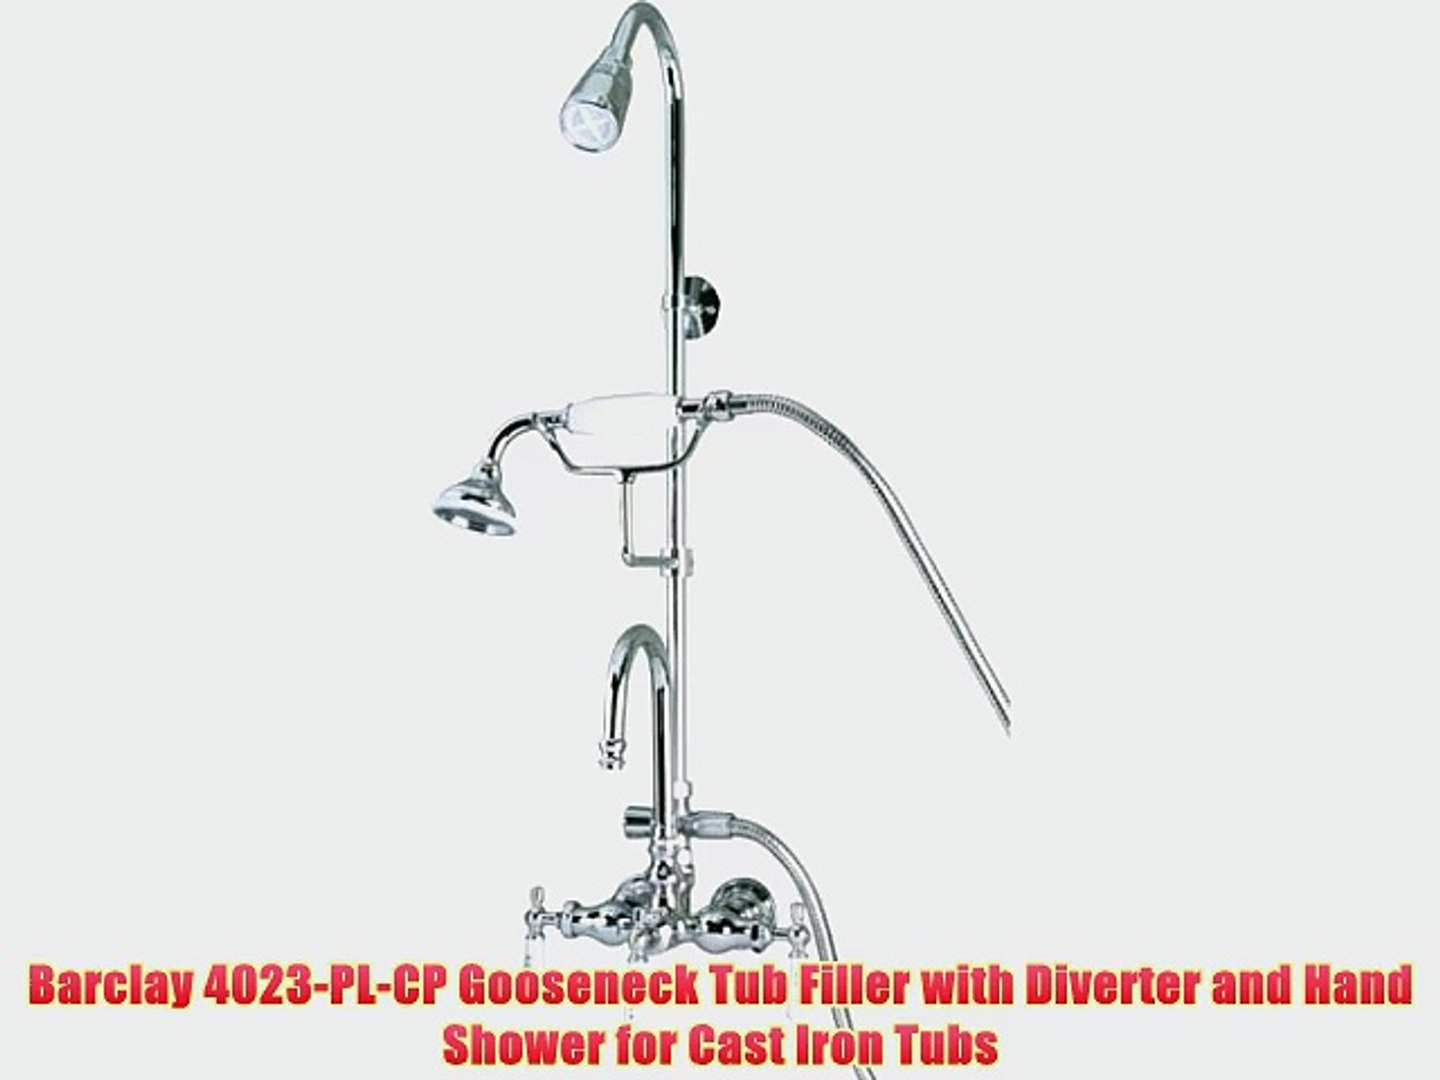 Barclay 4023 Pl Cp Gooseneck Tub Filler With Diverter And